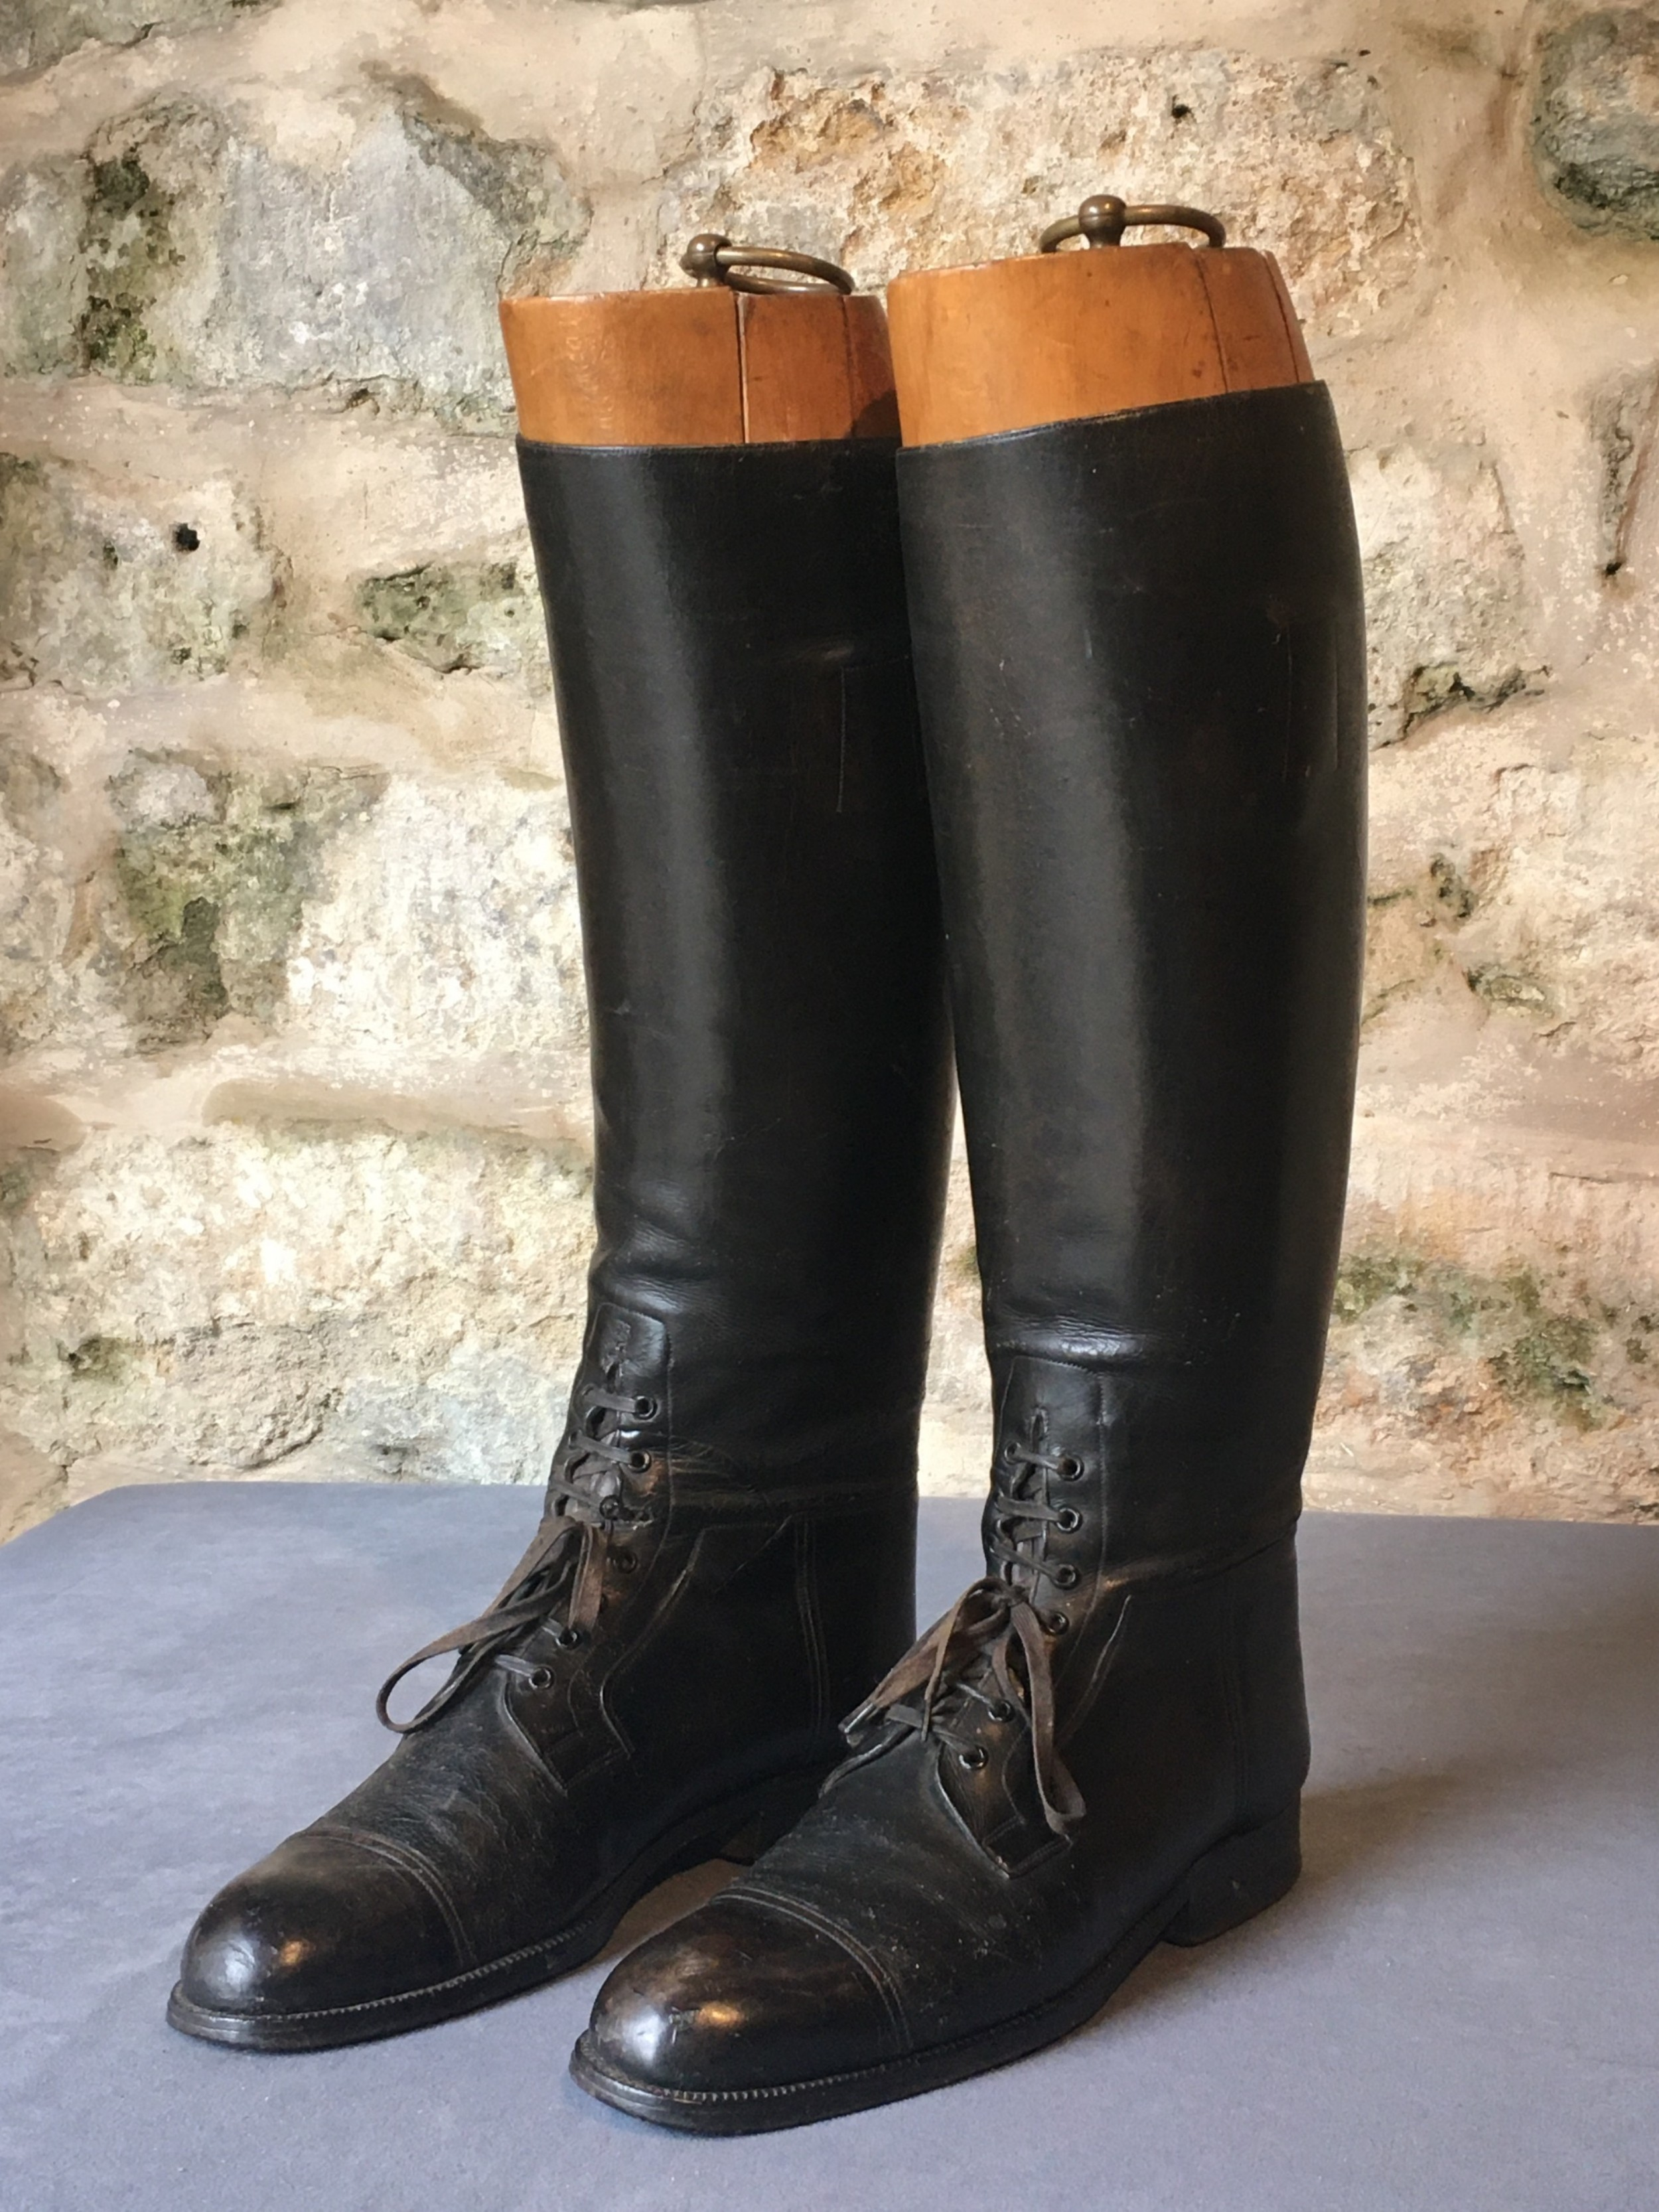 early 20th century riding boots